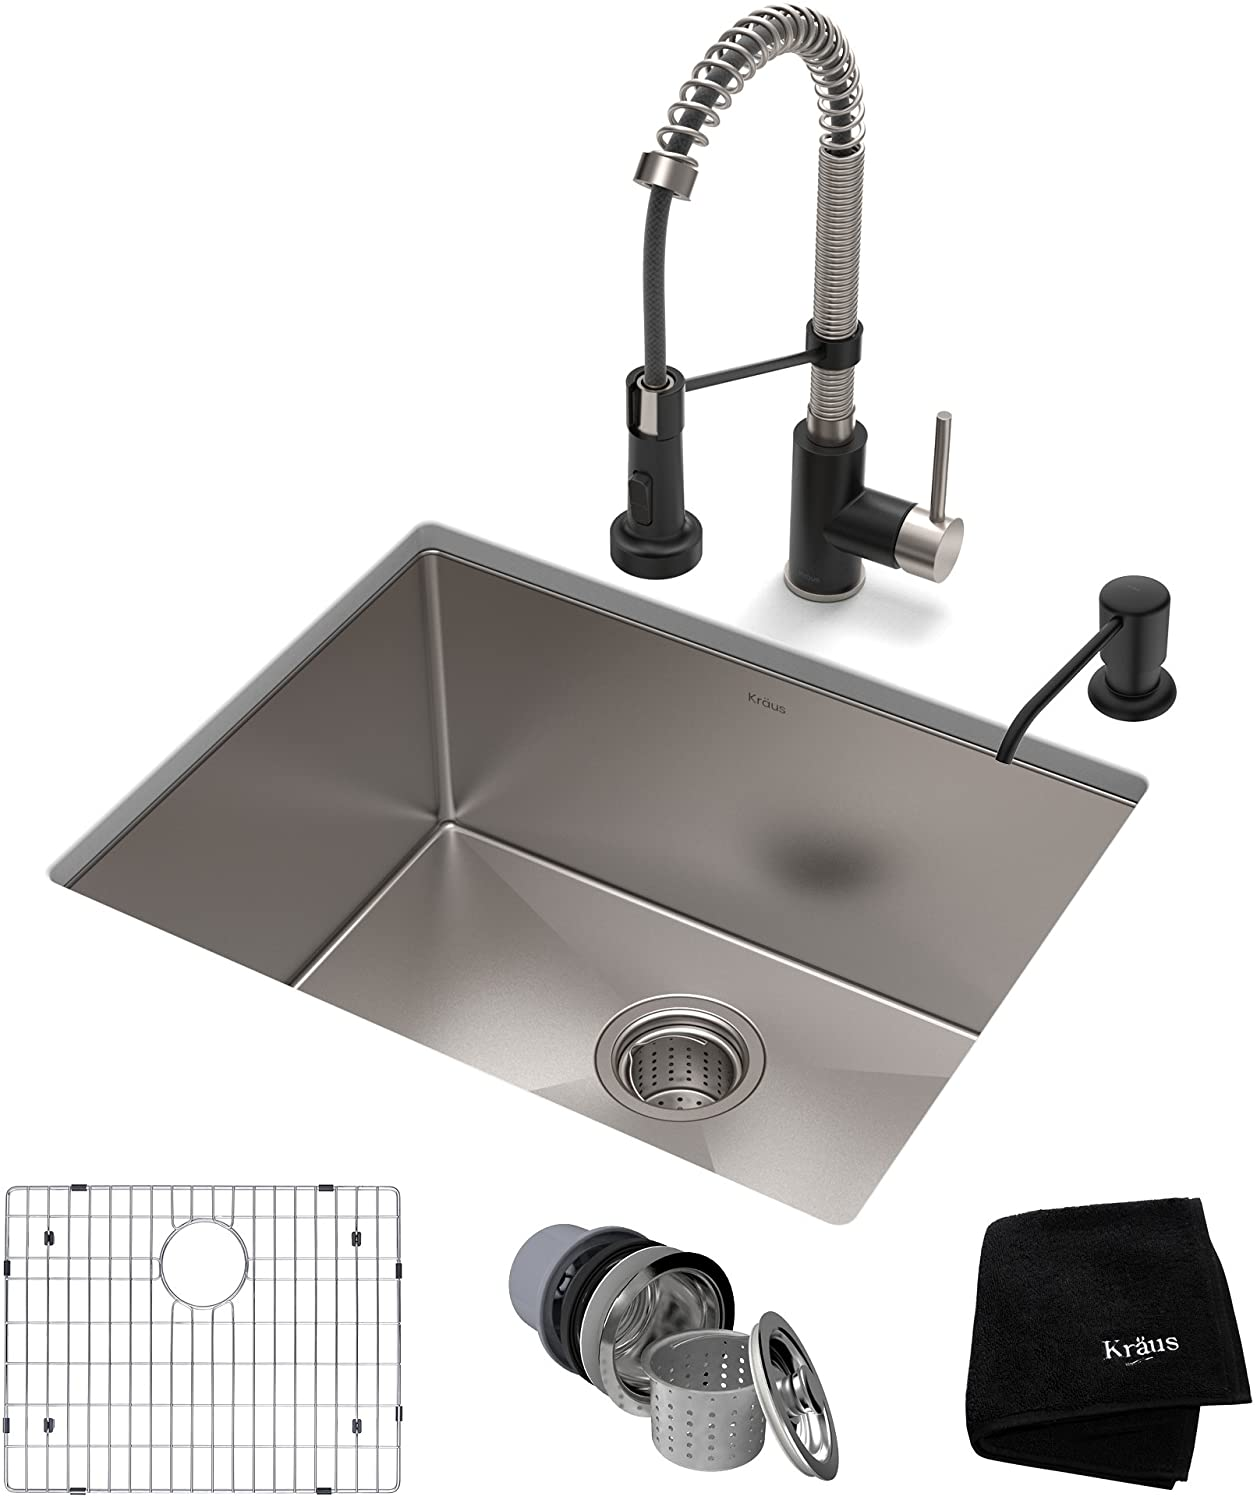 KRAUS KHU101-23-1610-53SSMB Set with Standart PRO Sink and Bolden Commercial Pull Faucet in Stainless Steel Matte Black Kitchen Sink & Faucet Combo